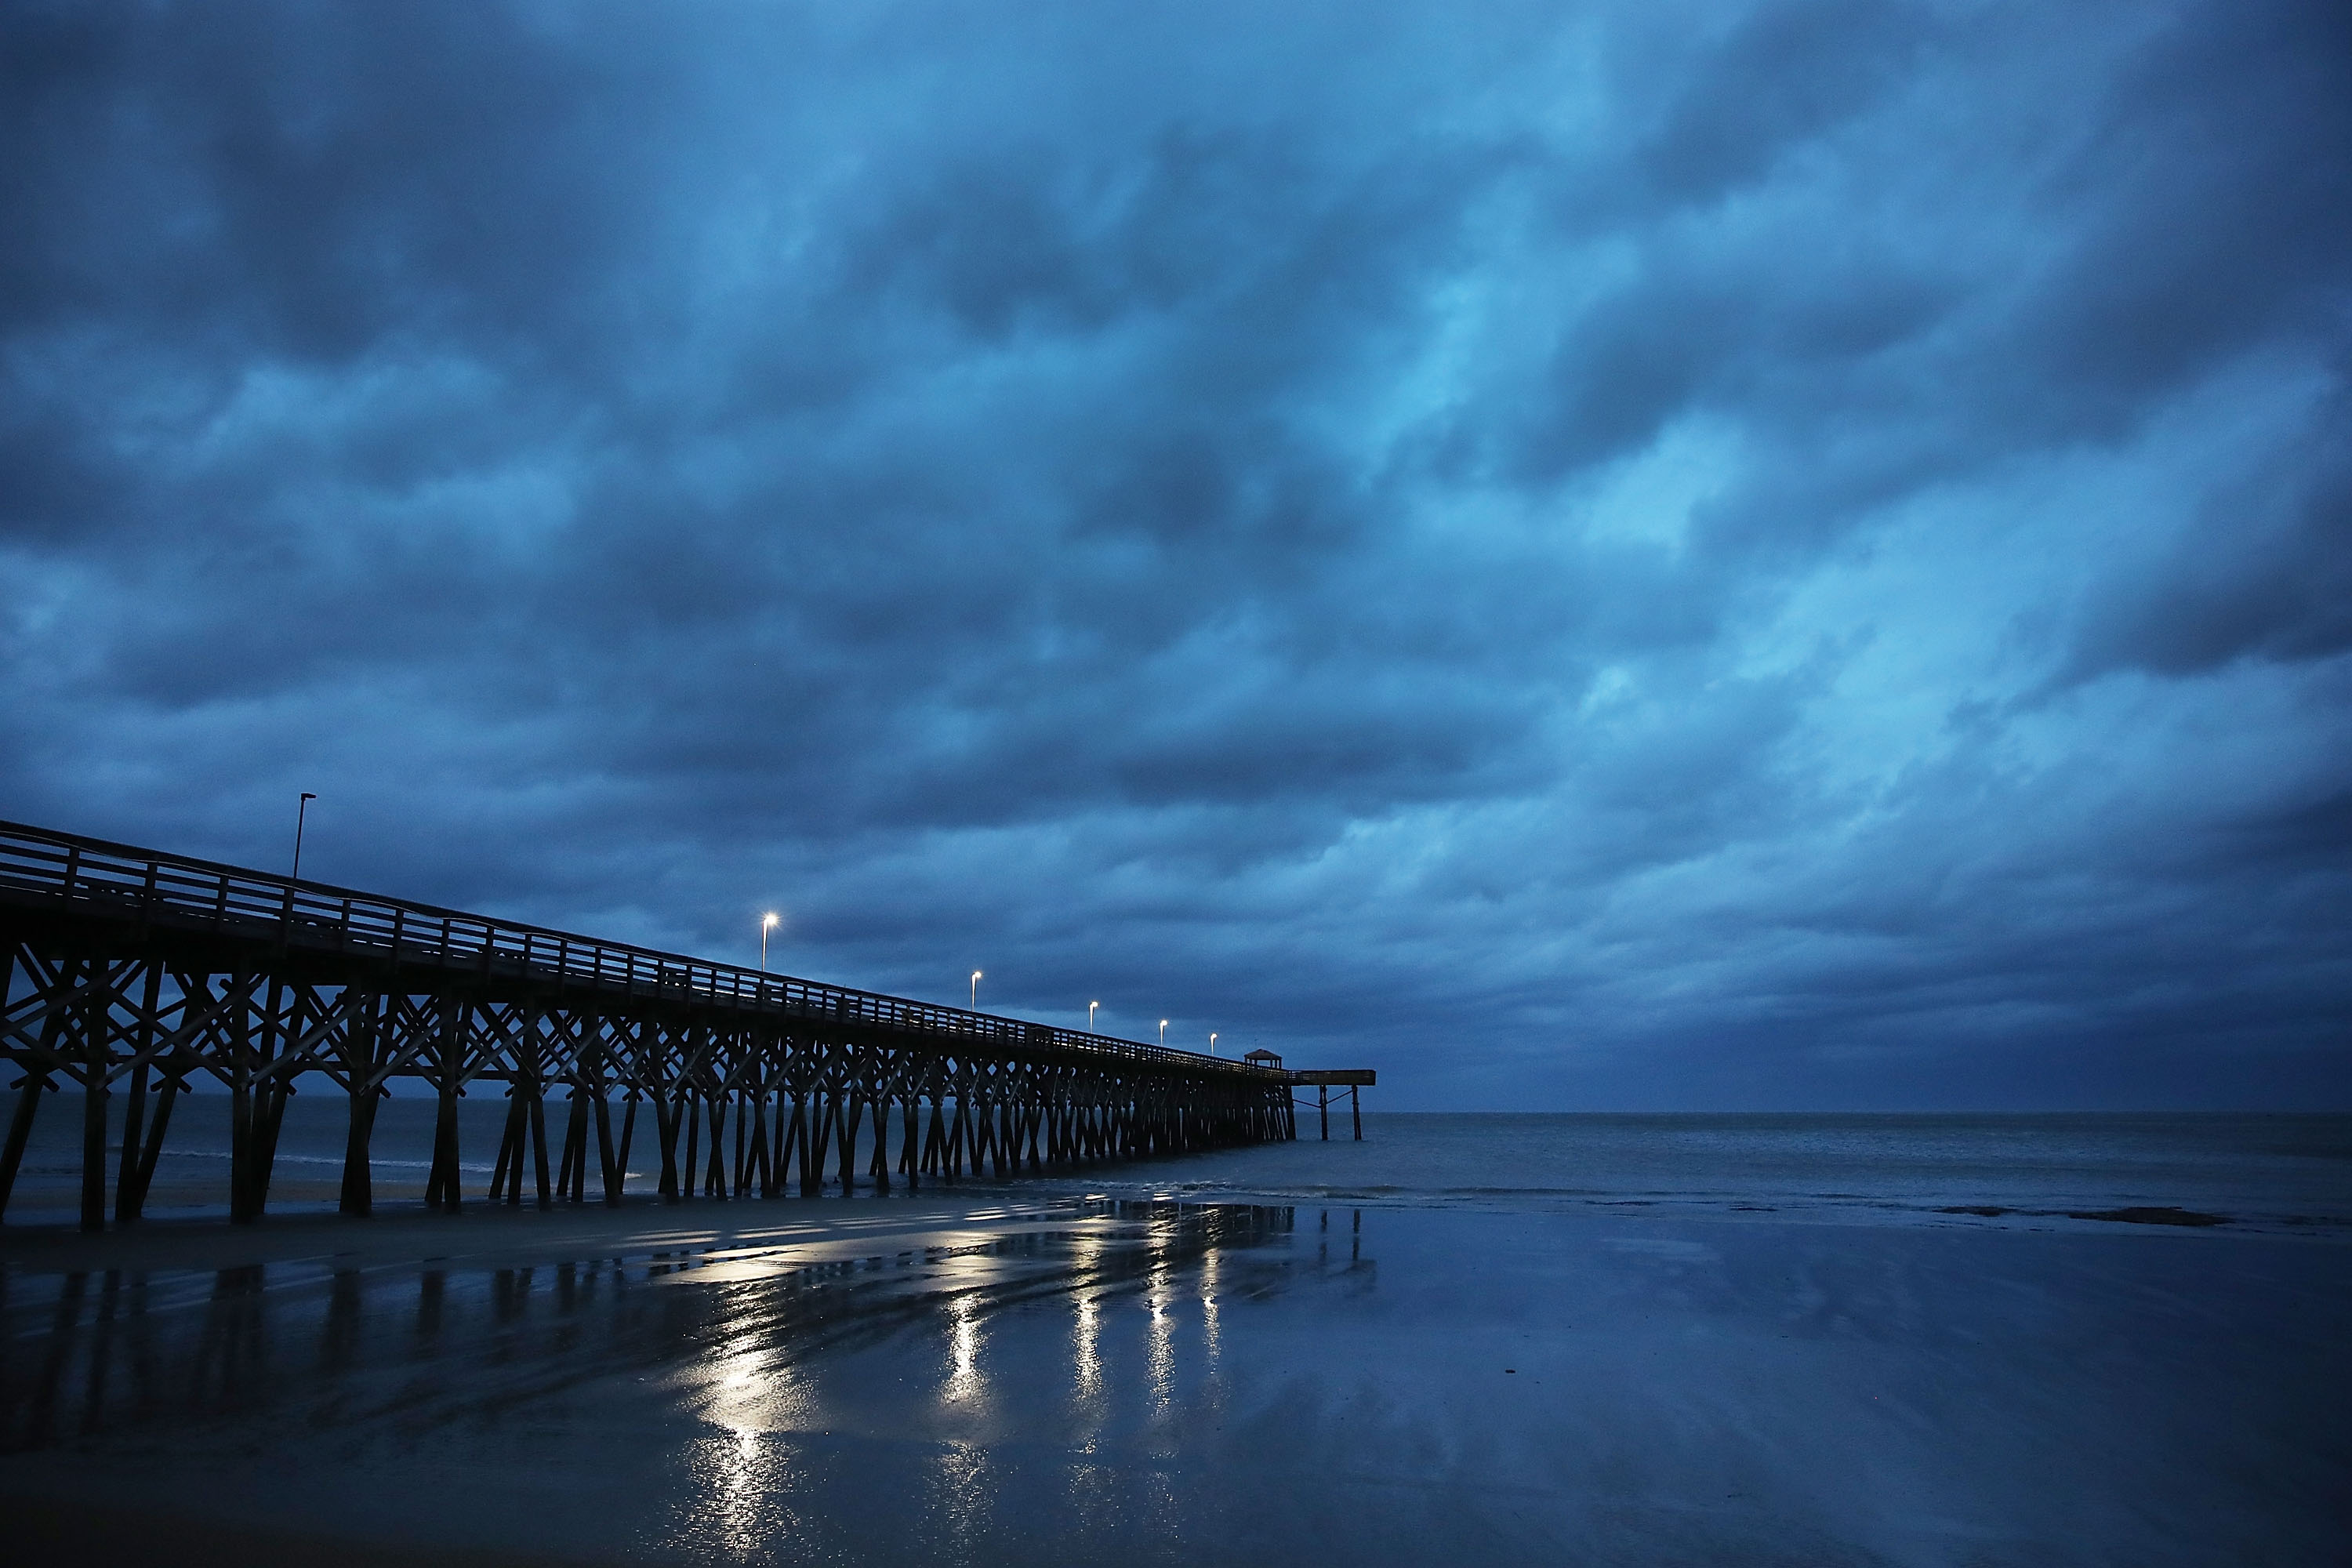 Storm clouds are seen over a pier in Myrtle Beach on Friday